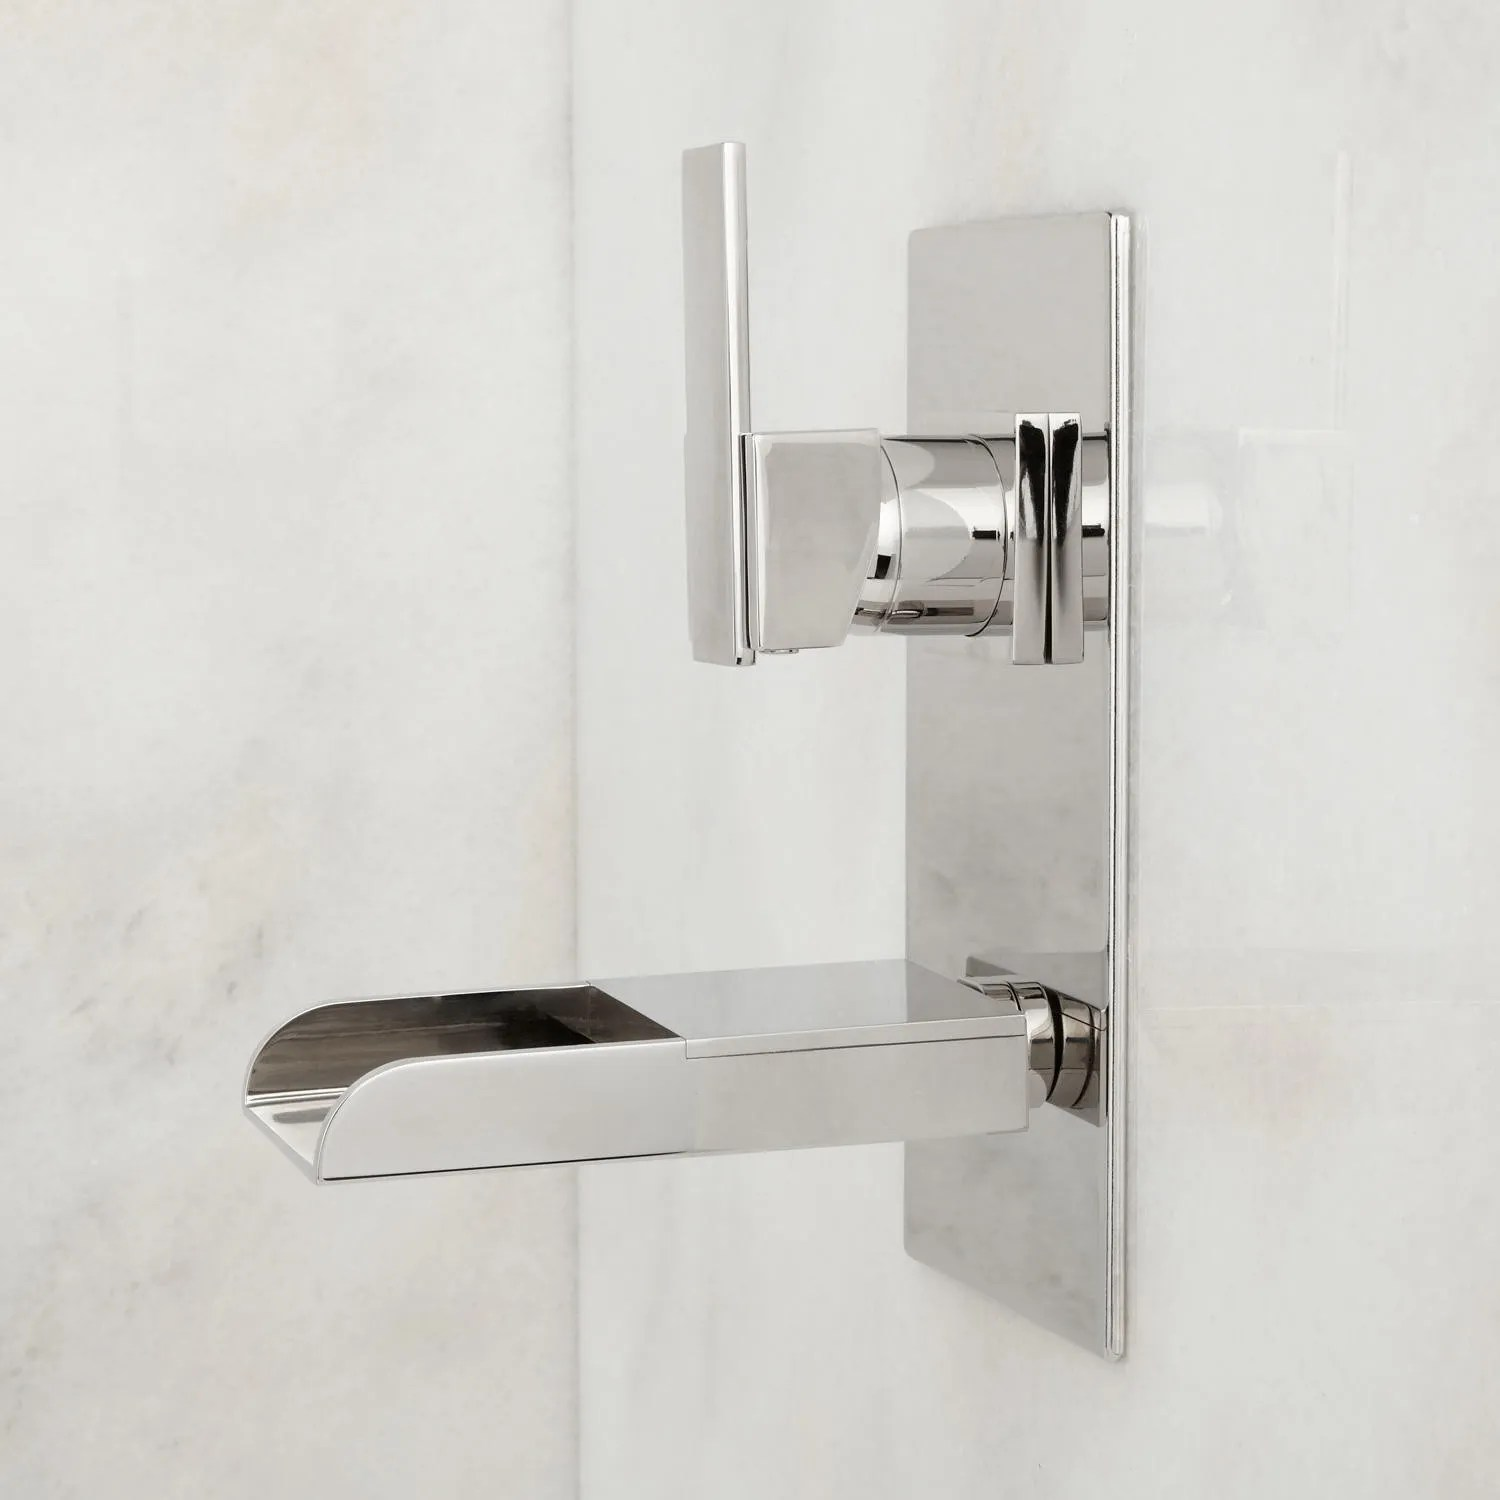 chrome kitchen faucet country sinks willis wall-mount bathroom waterfall -